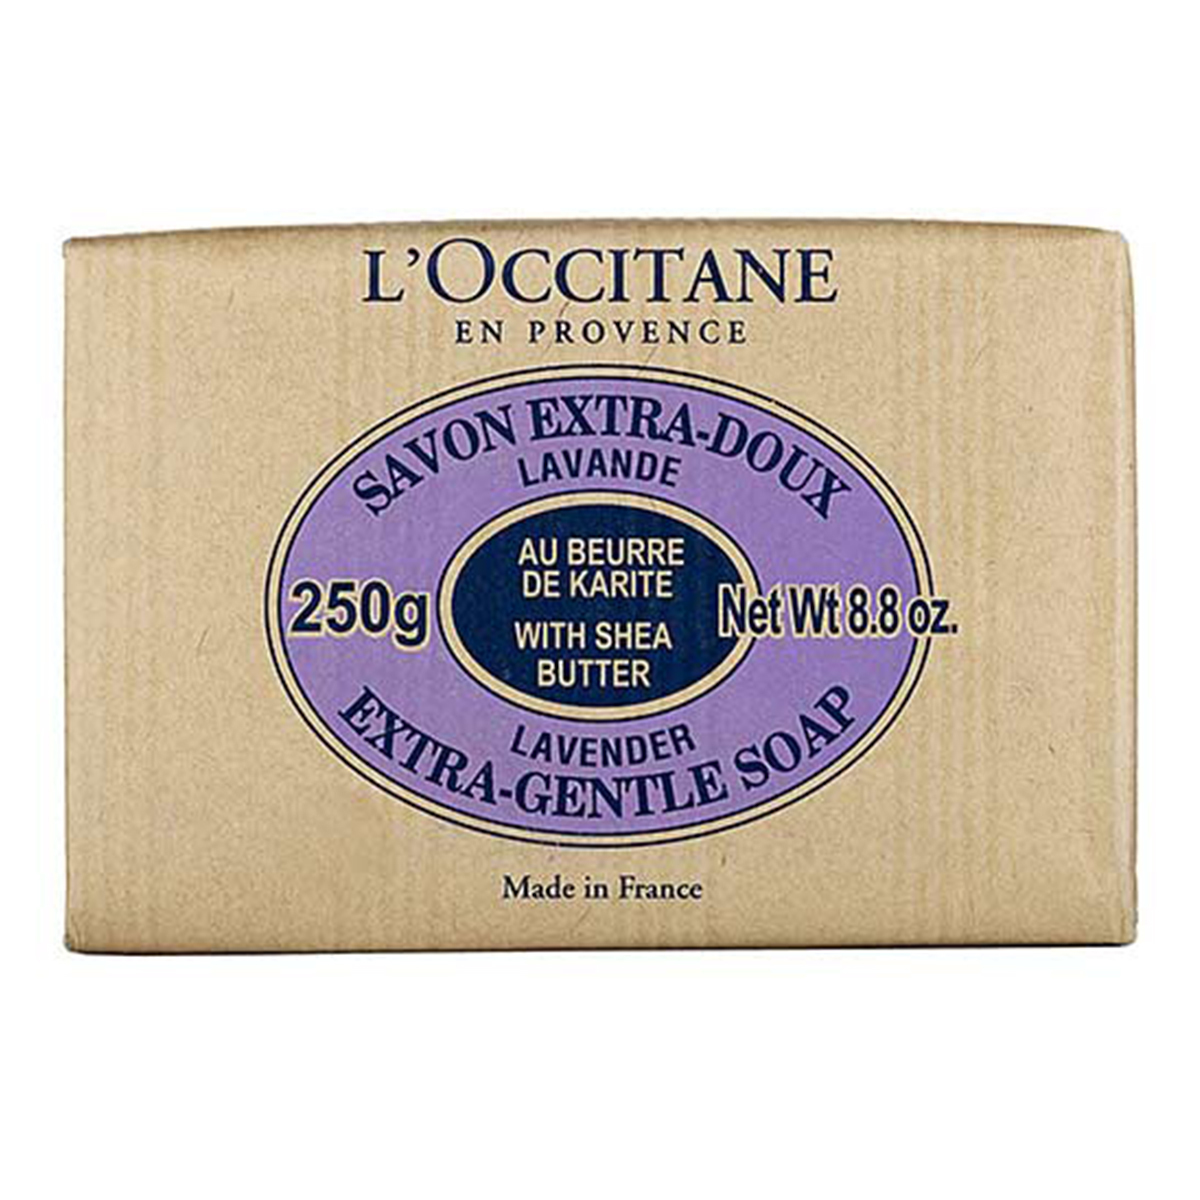 L'Occitane shea butter soap from Sephora photo